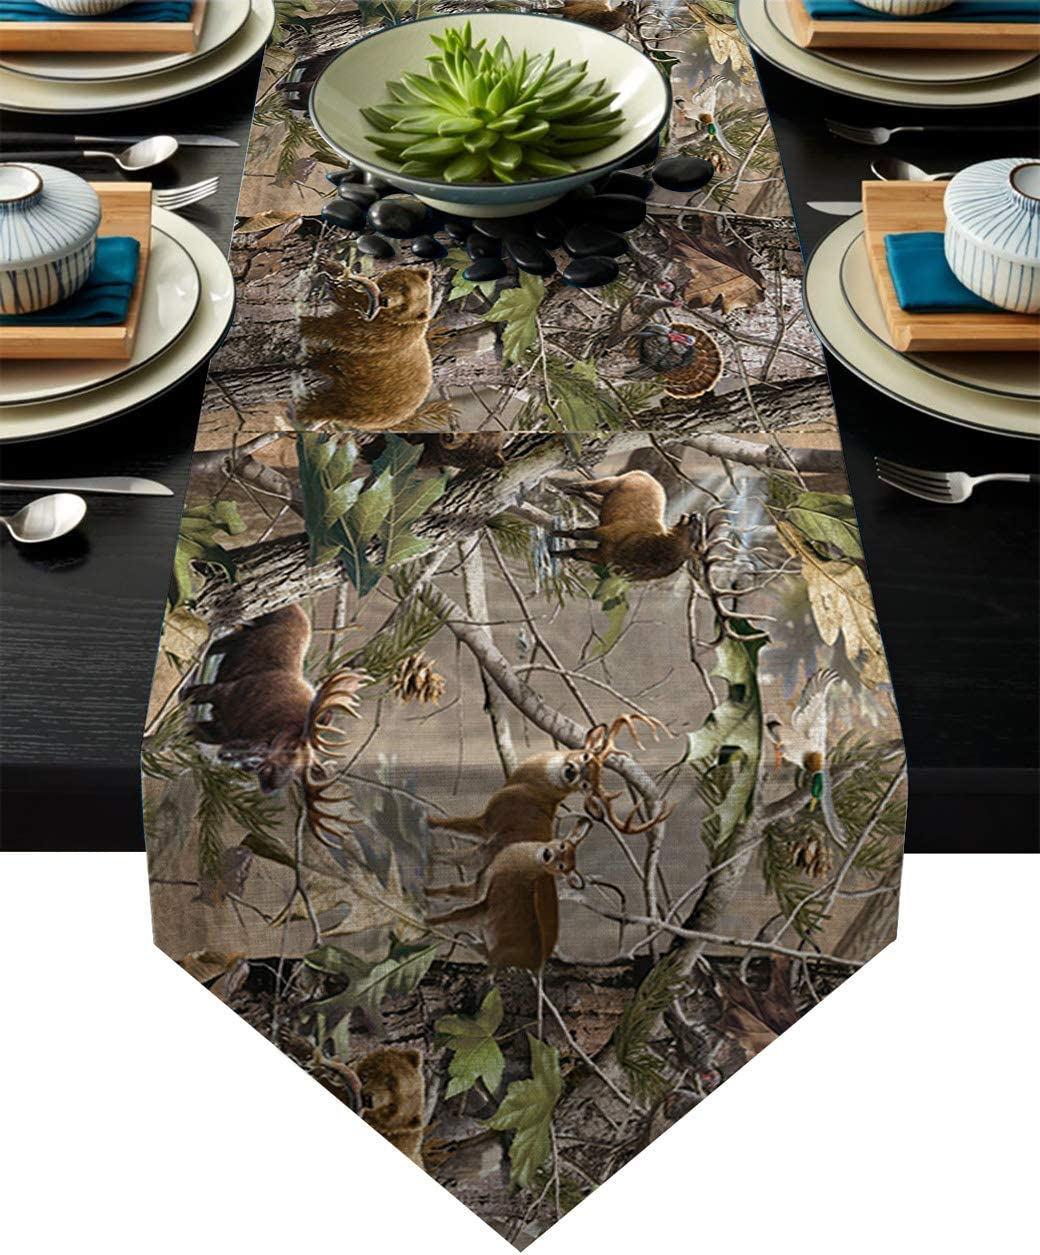 "Cotton Linen Table Runner Dresser Scarves Real Camo Tree Rustic Deer Elk Bird Bear Non-Slip Burlap Tablecloth for Holiday Dinner Parties Wedding Home Decor - 14""x72"""